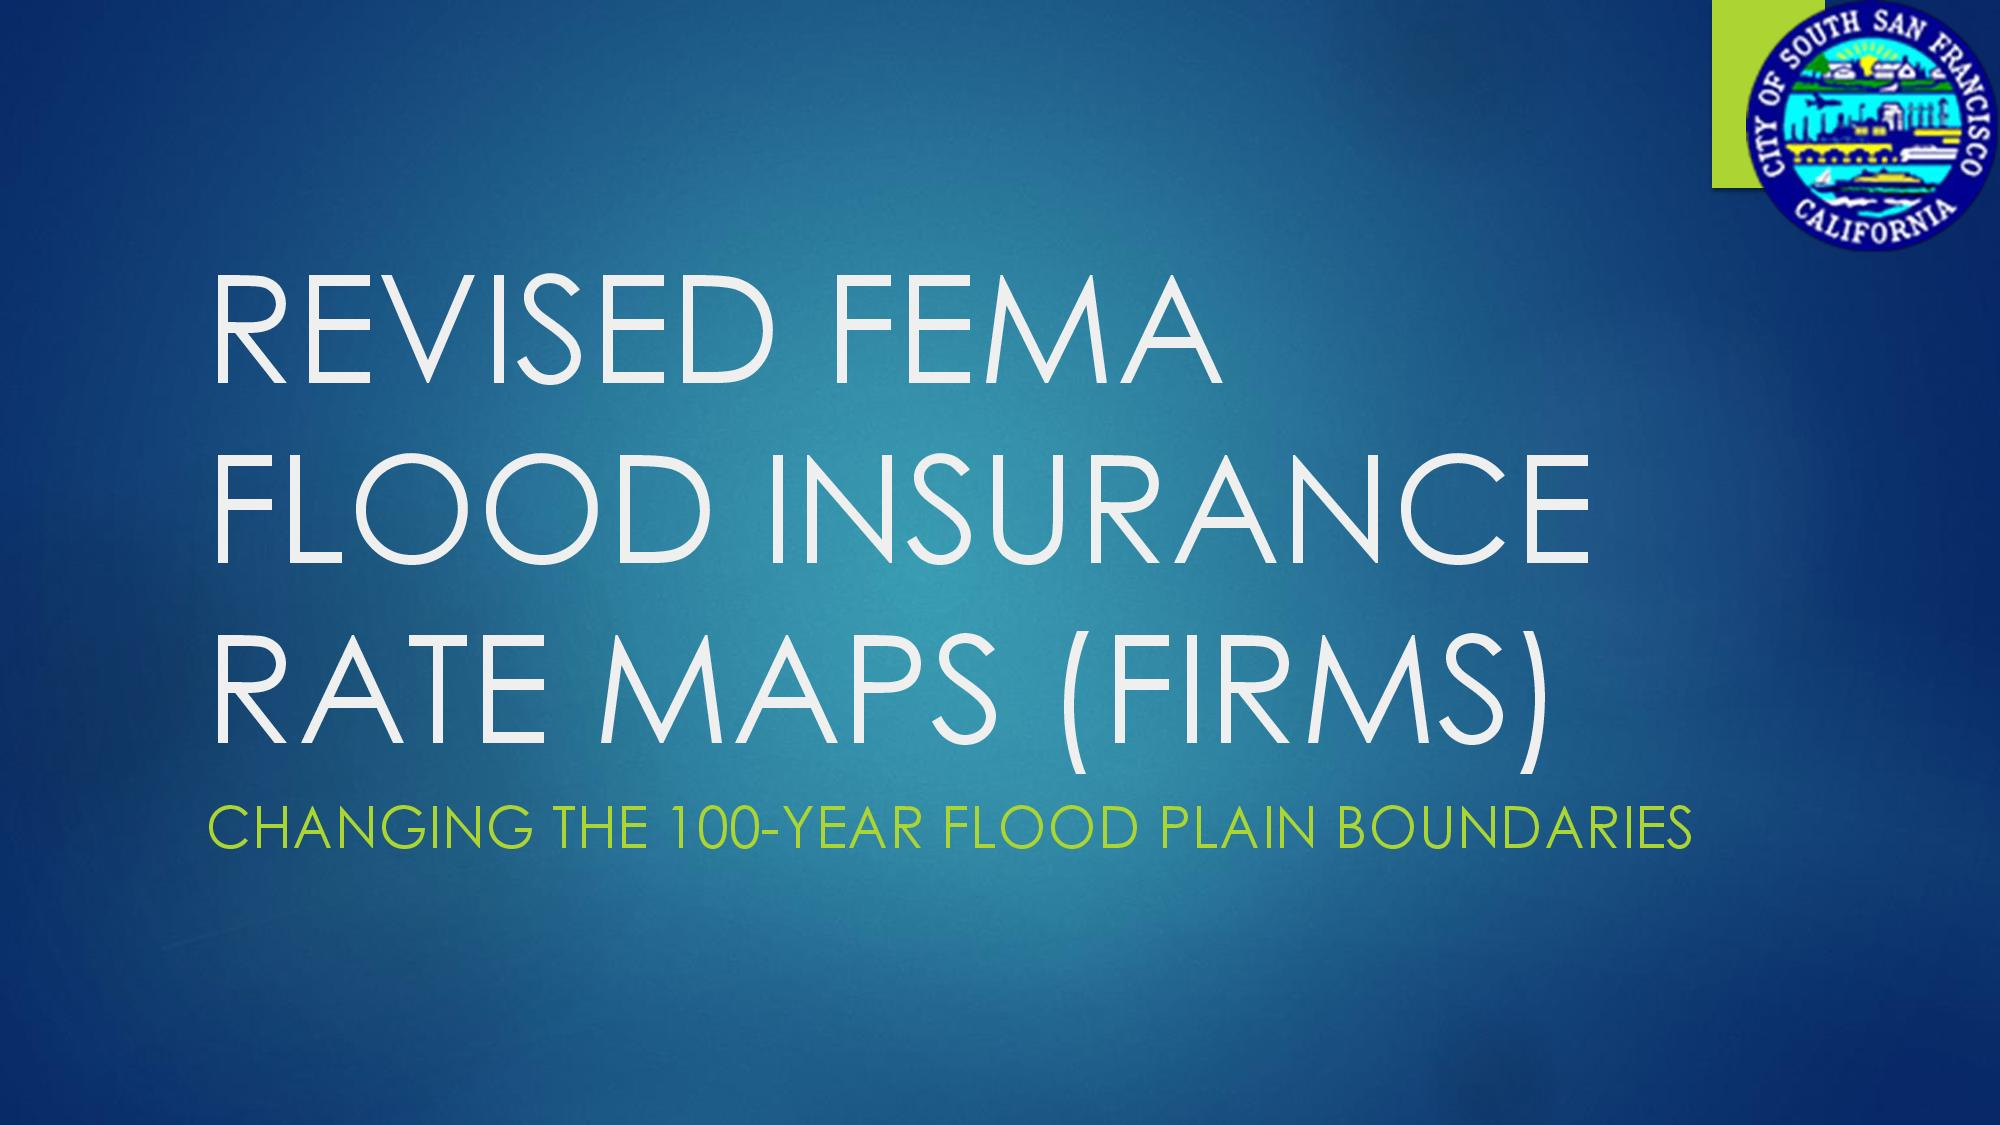 Update on the SSF FEMA Flood Zone Map on Wed Aug 8th Agenda Special Mtg 6pm MSB